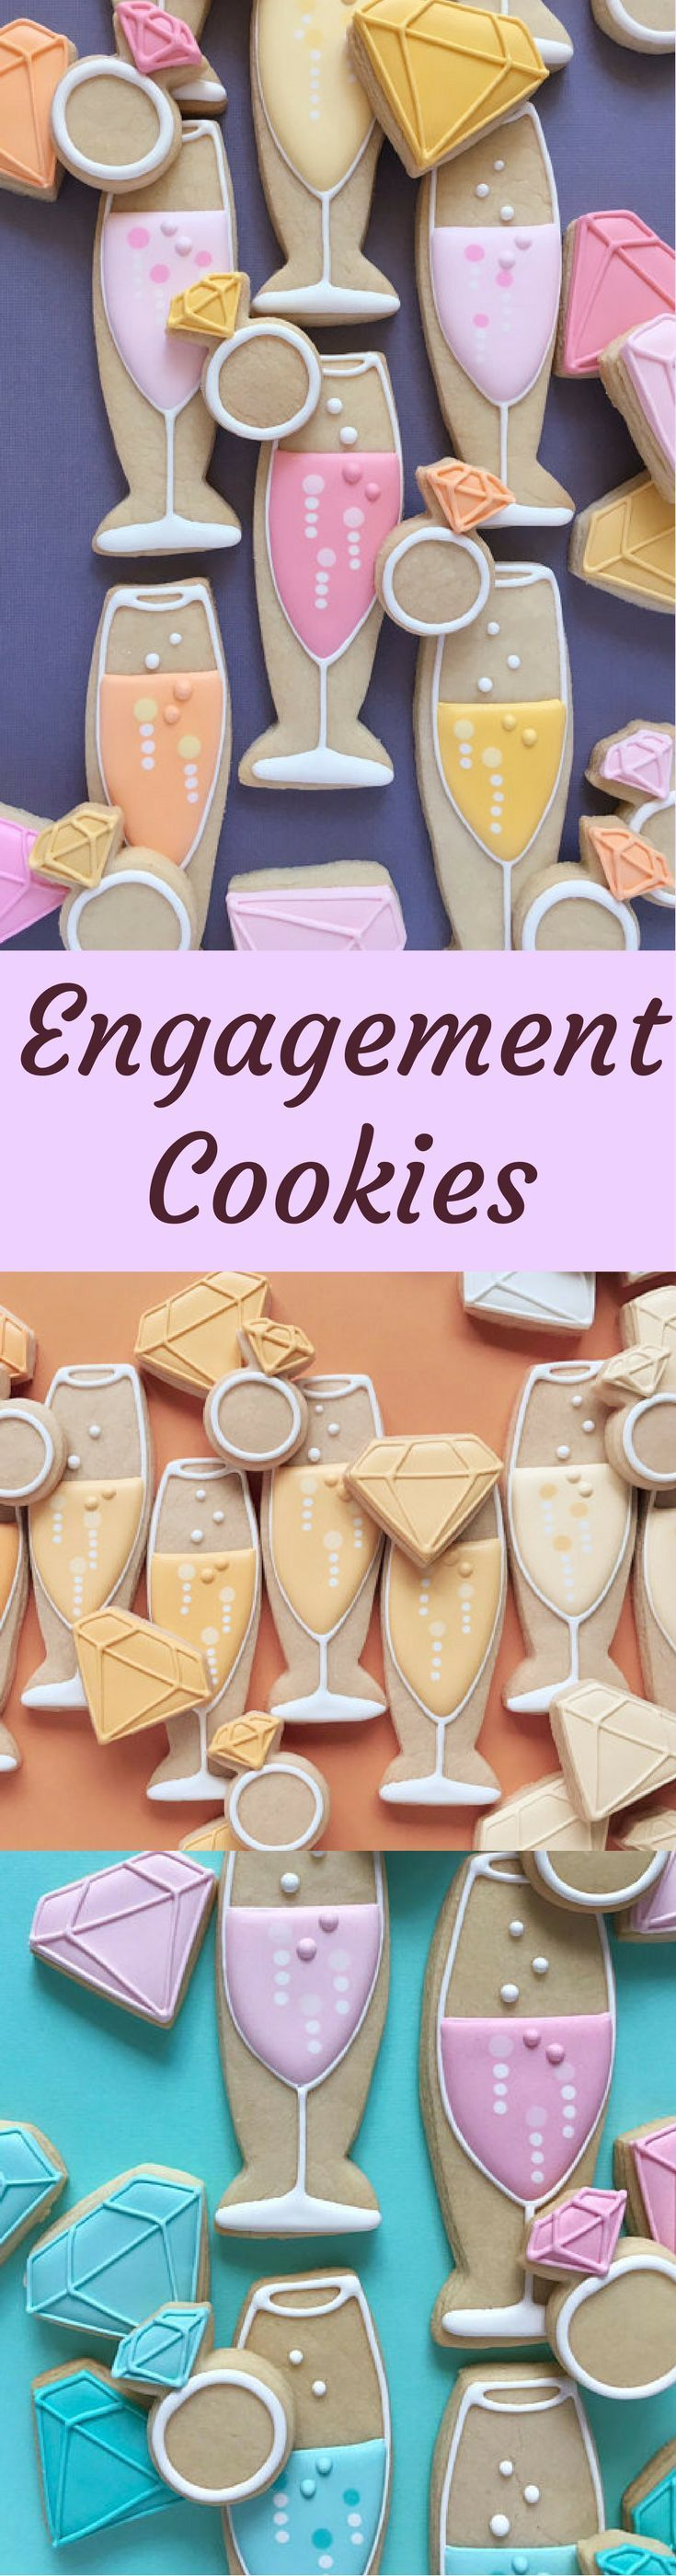 Engagement Mix Cookies!! Bridal Shower Food Favor Ideas, Engagement Party Ideas, Bachelorette Party Ideas, Lingerie Shower Ideas, Wedding Cookies, Engagement Party Decor, Wedding Decor, Wedding Reception Decor, Champagne Flute Diamond Ring Embellished Cookies Bridesmaid Bridal Party Maid of Honor Gift Ideas #affiliatelink